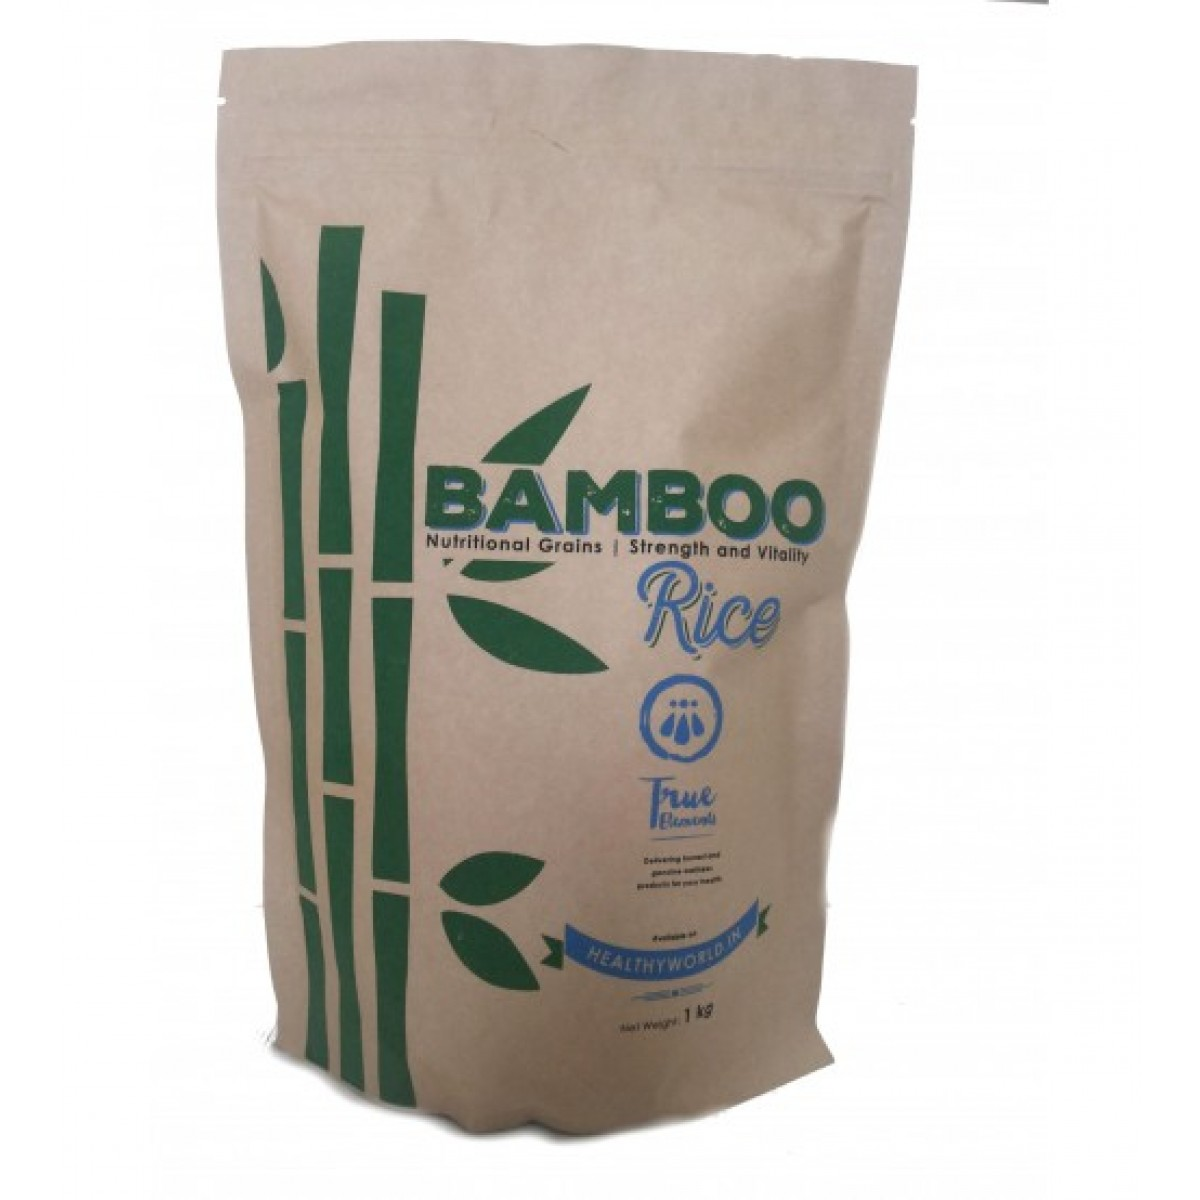 Buy True Elements Nutritional Grains - Bamboo Rice online Nederland [ NL ]